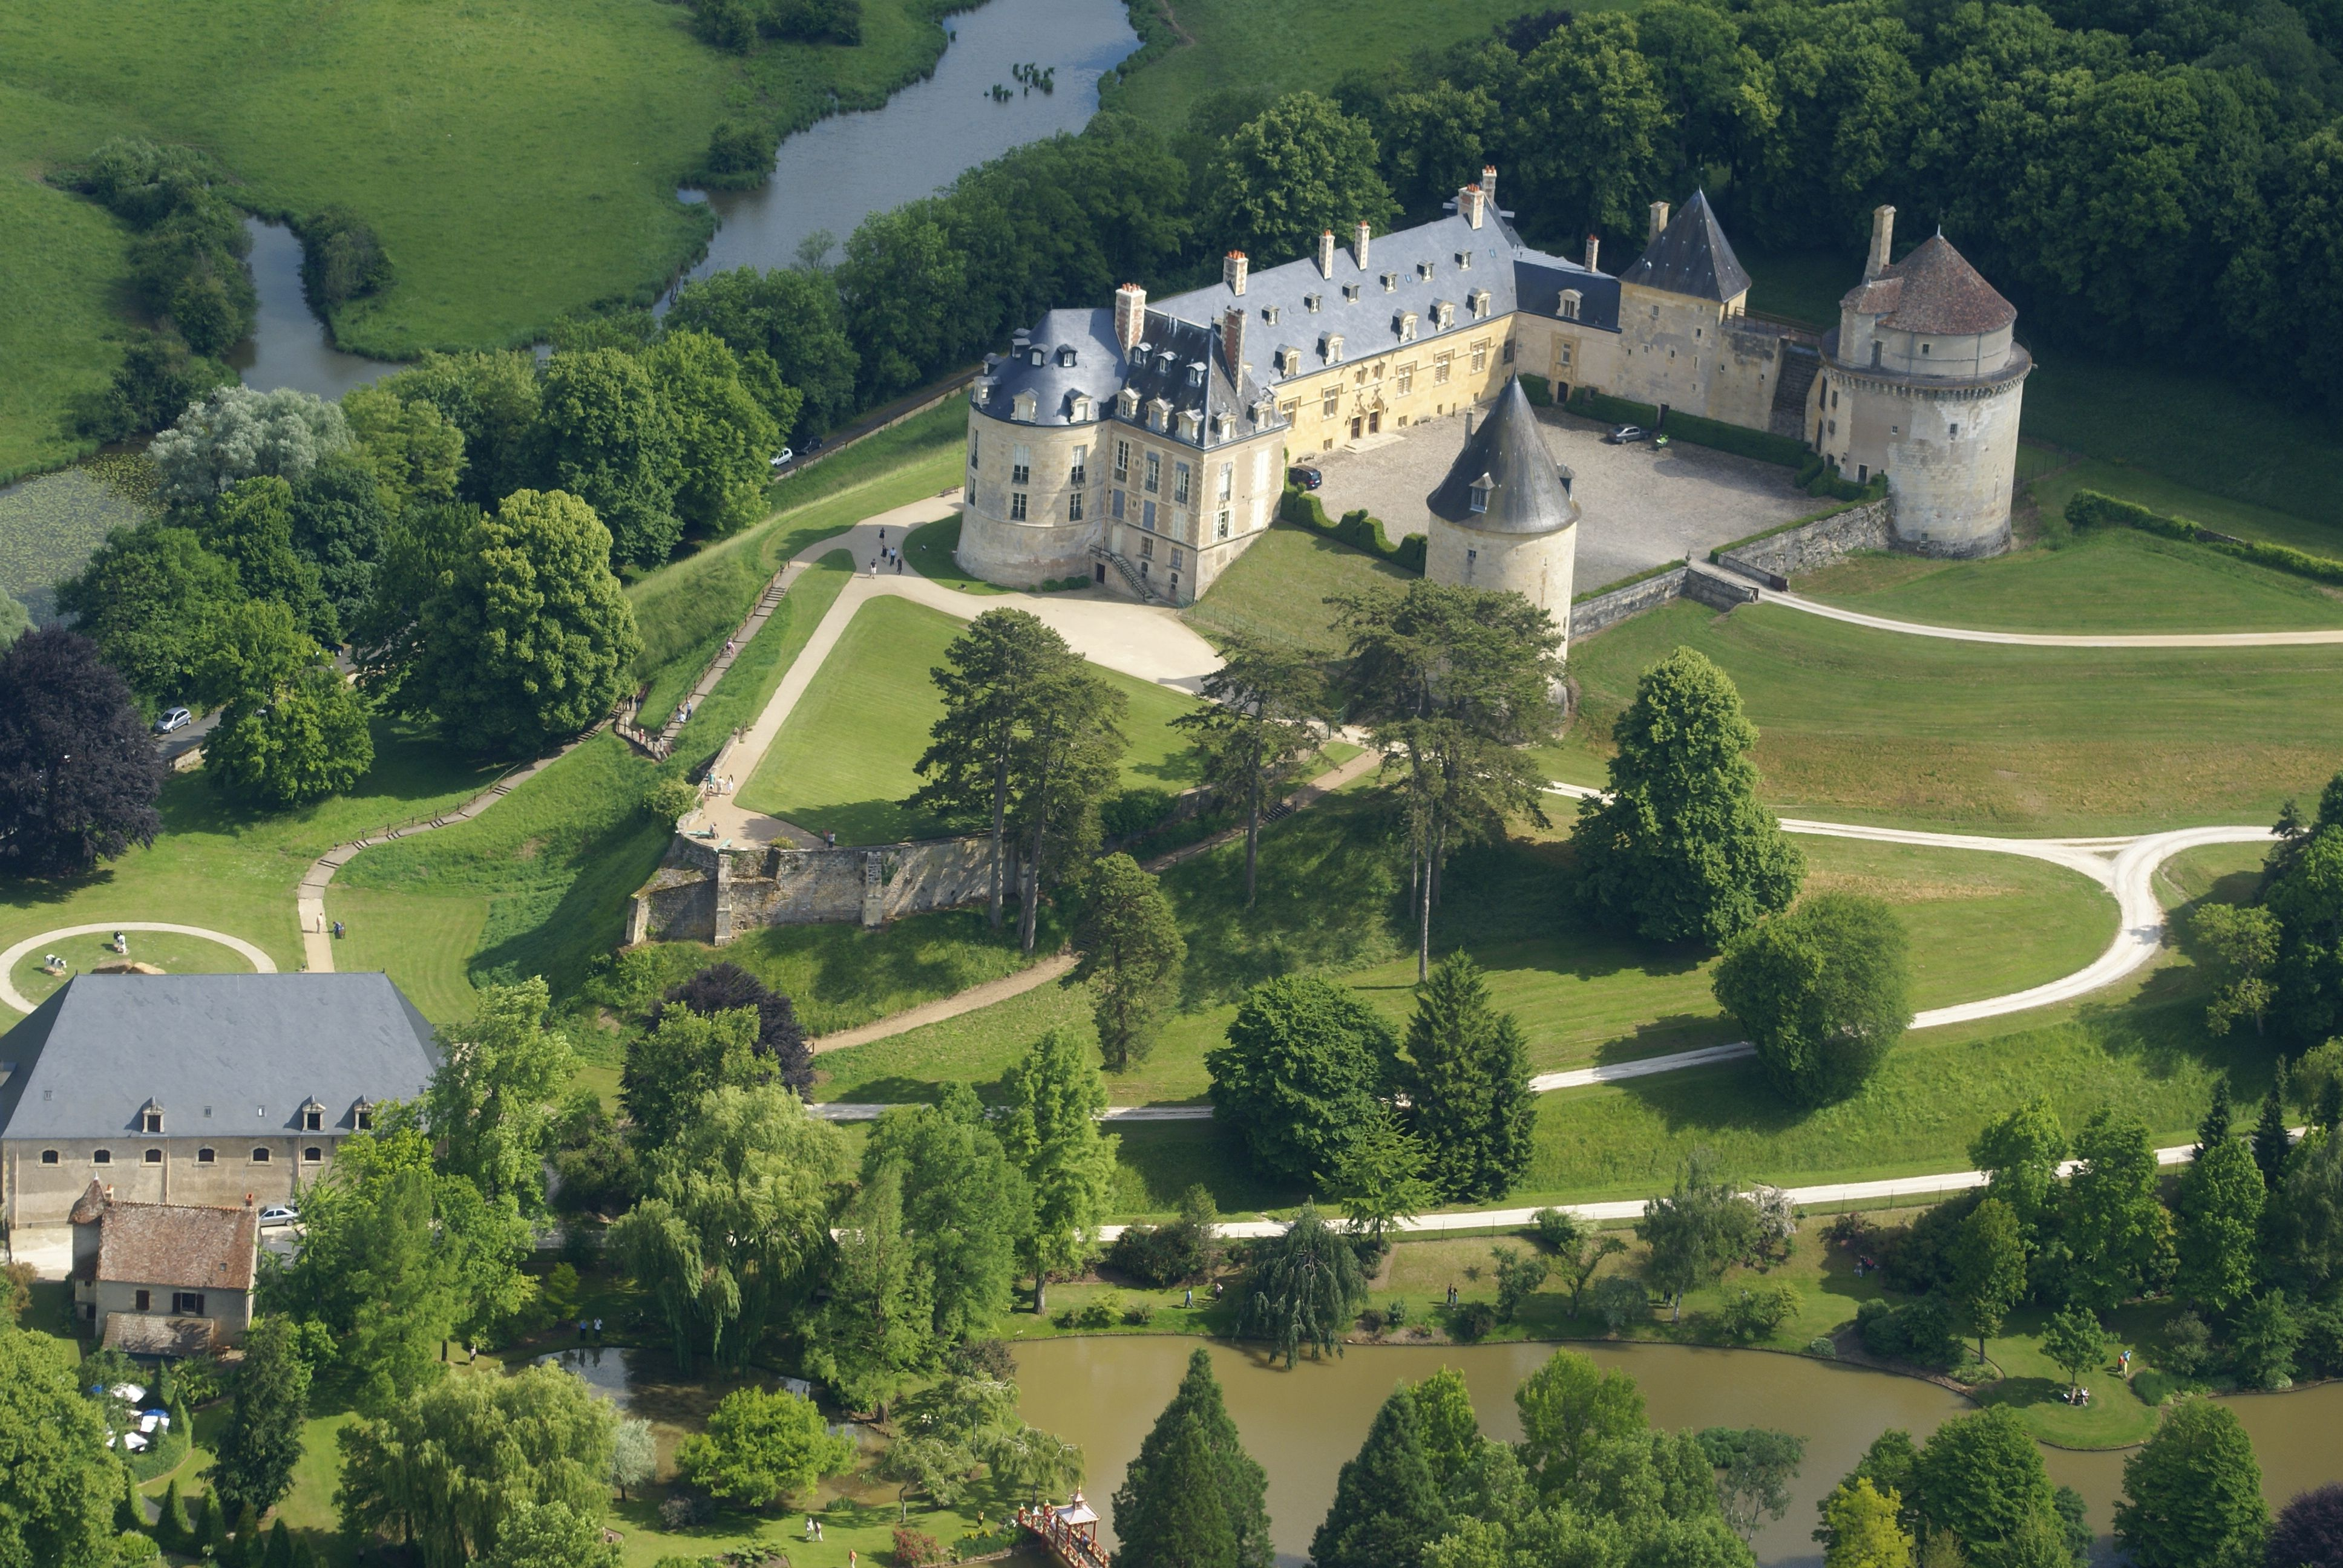 Apremont Sur Allier Chateau Apremont Sur Allier Architecture French Pinterest Castle